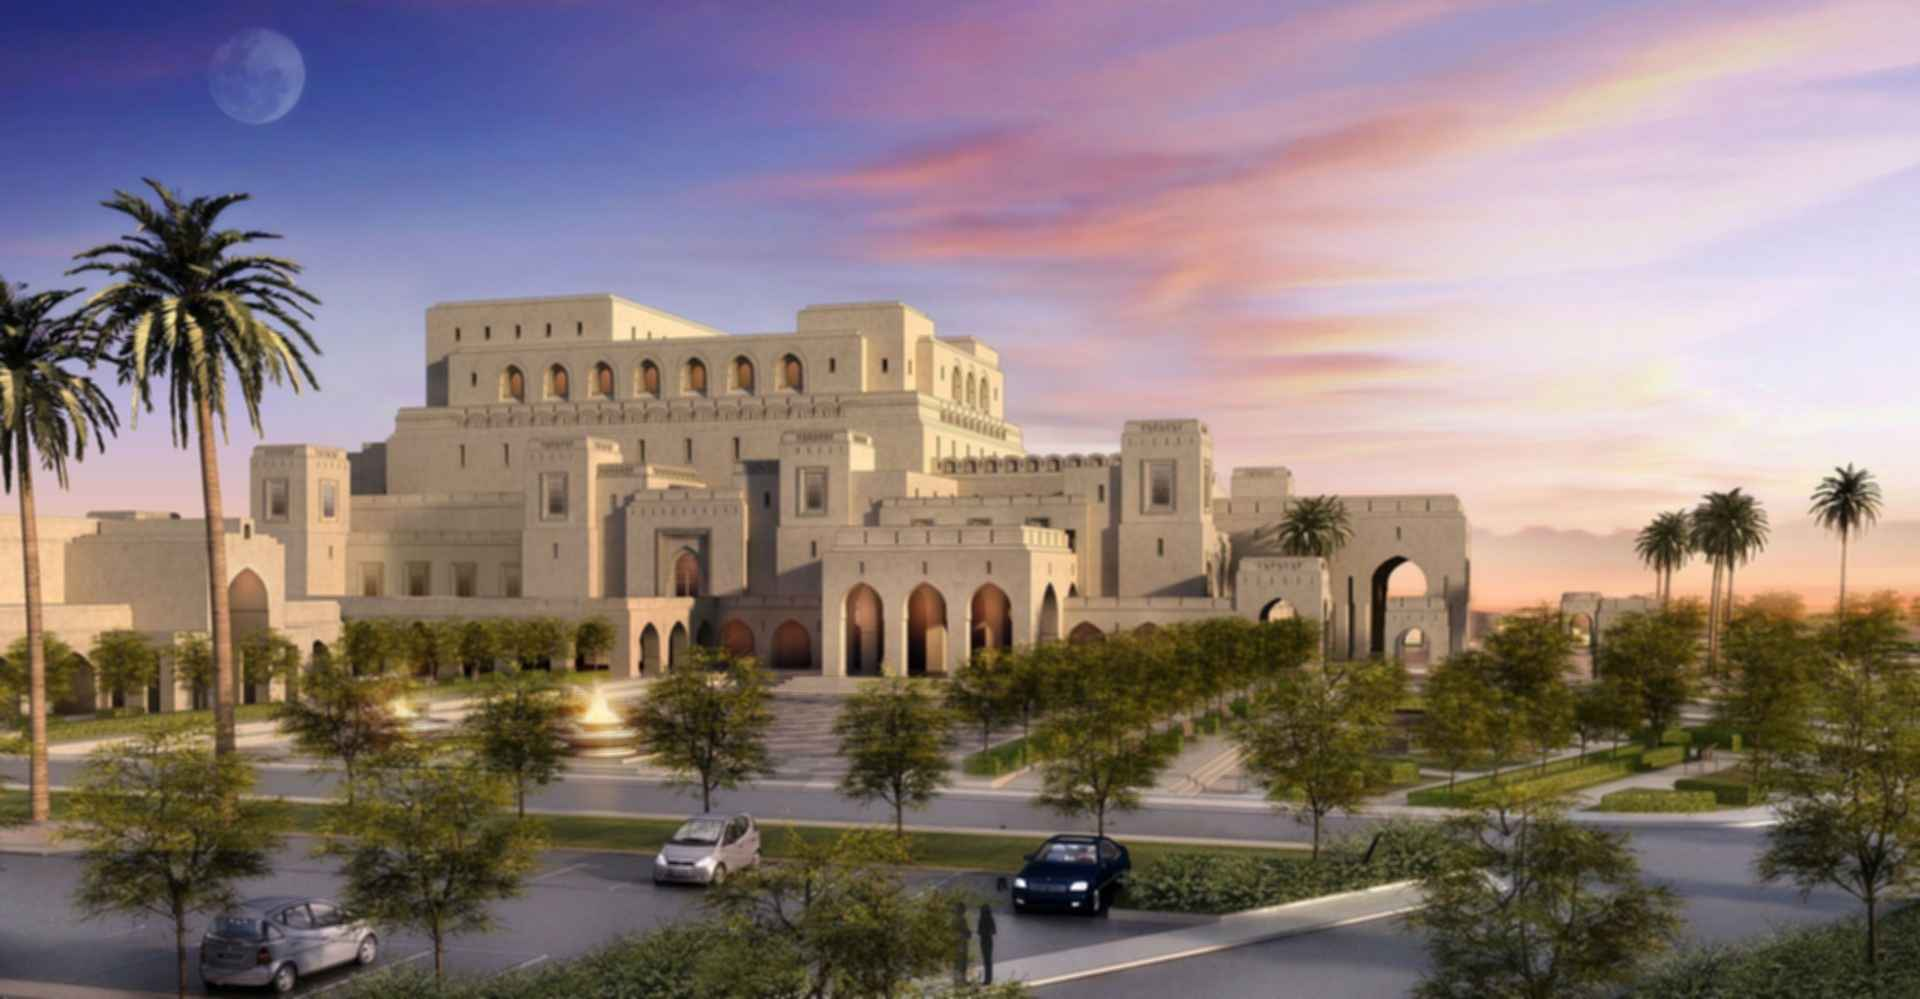 Royal Opera House Muscat - Concept Design